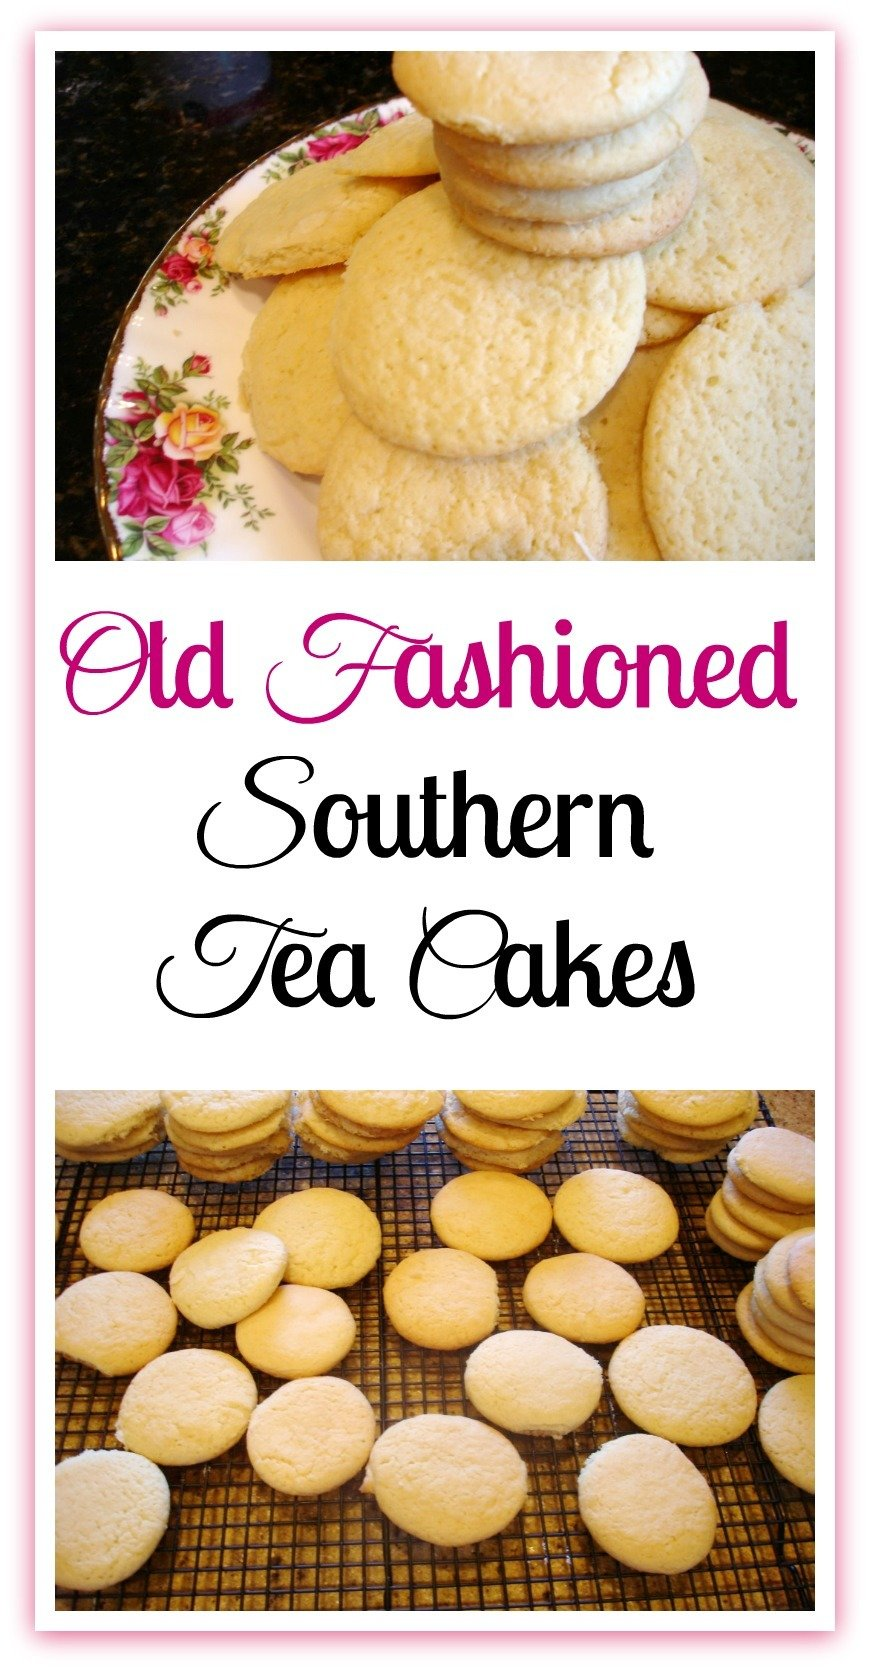 The old-fashioned Southern Tea Cakes served as a treat for generations of Southerners prior to commercialized bakeries. #Dessert #Southern #Tea Cakes